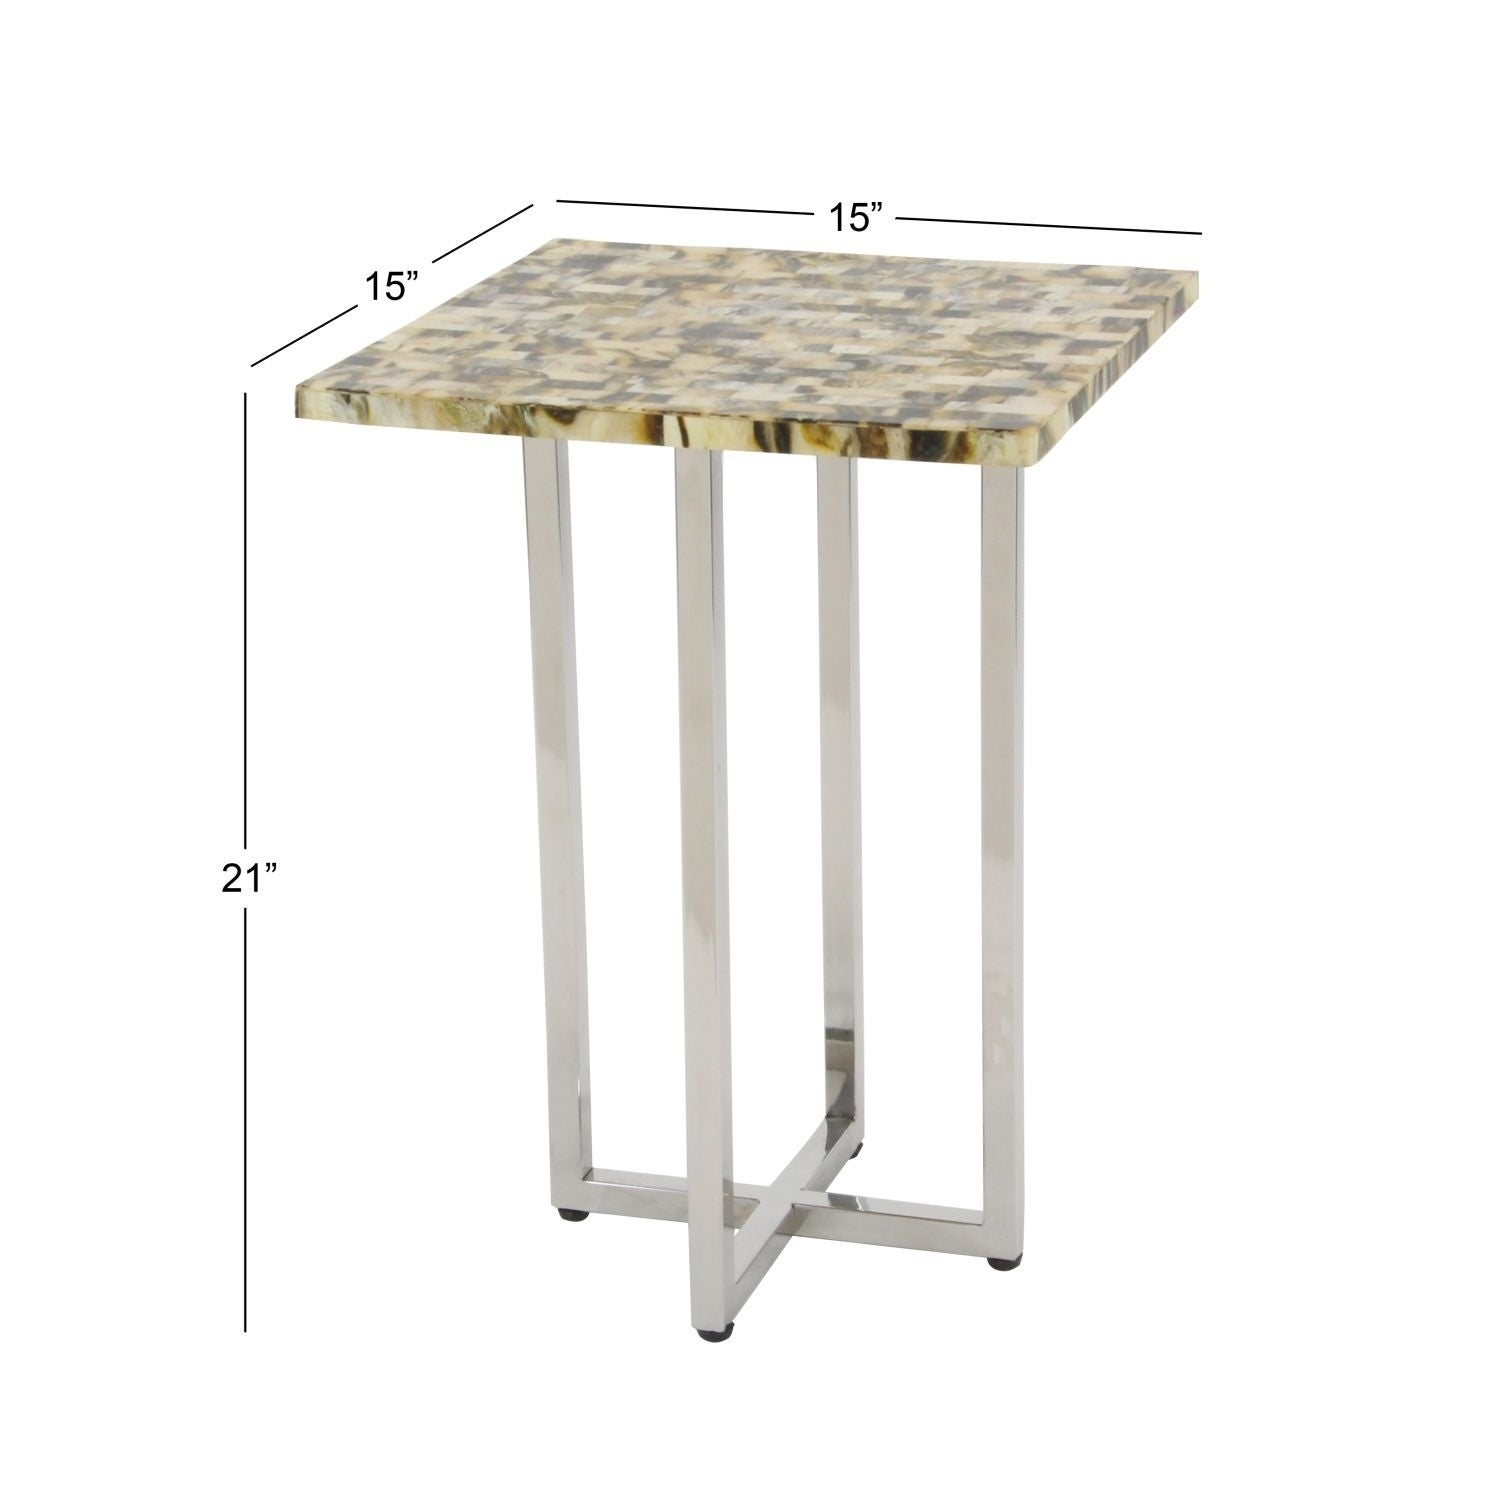 Shop Studio 350 Stainless Steel Inly Accent Table 15 inches wide